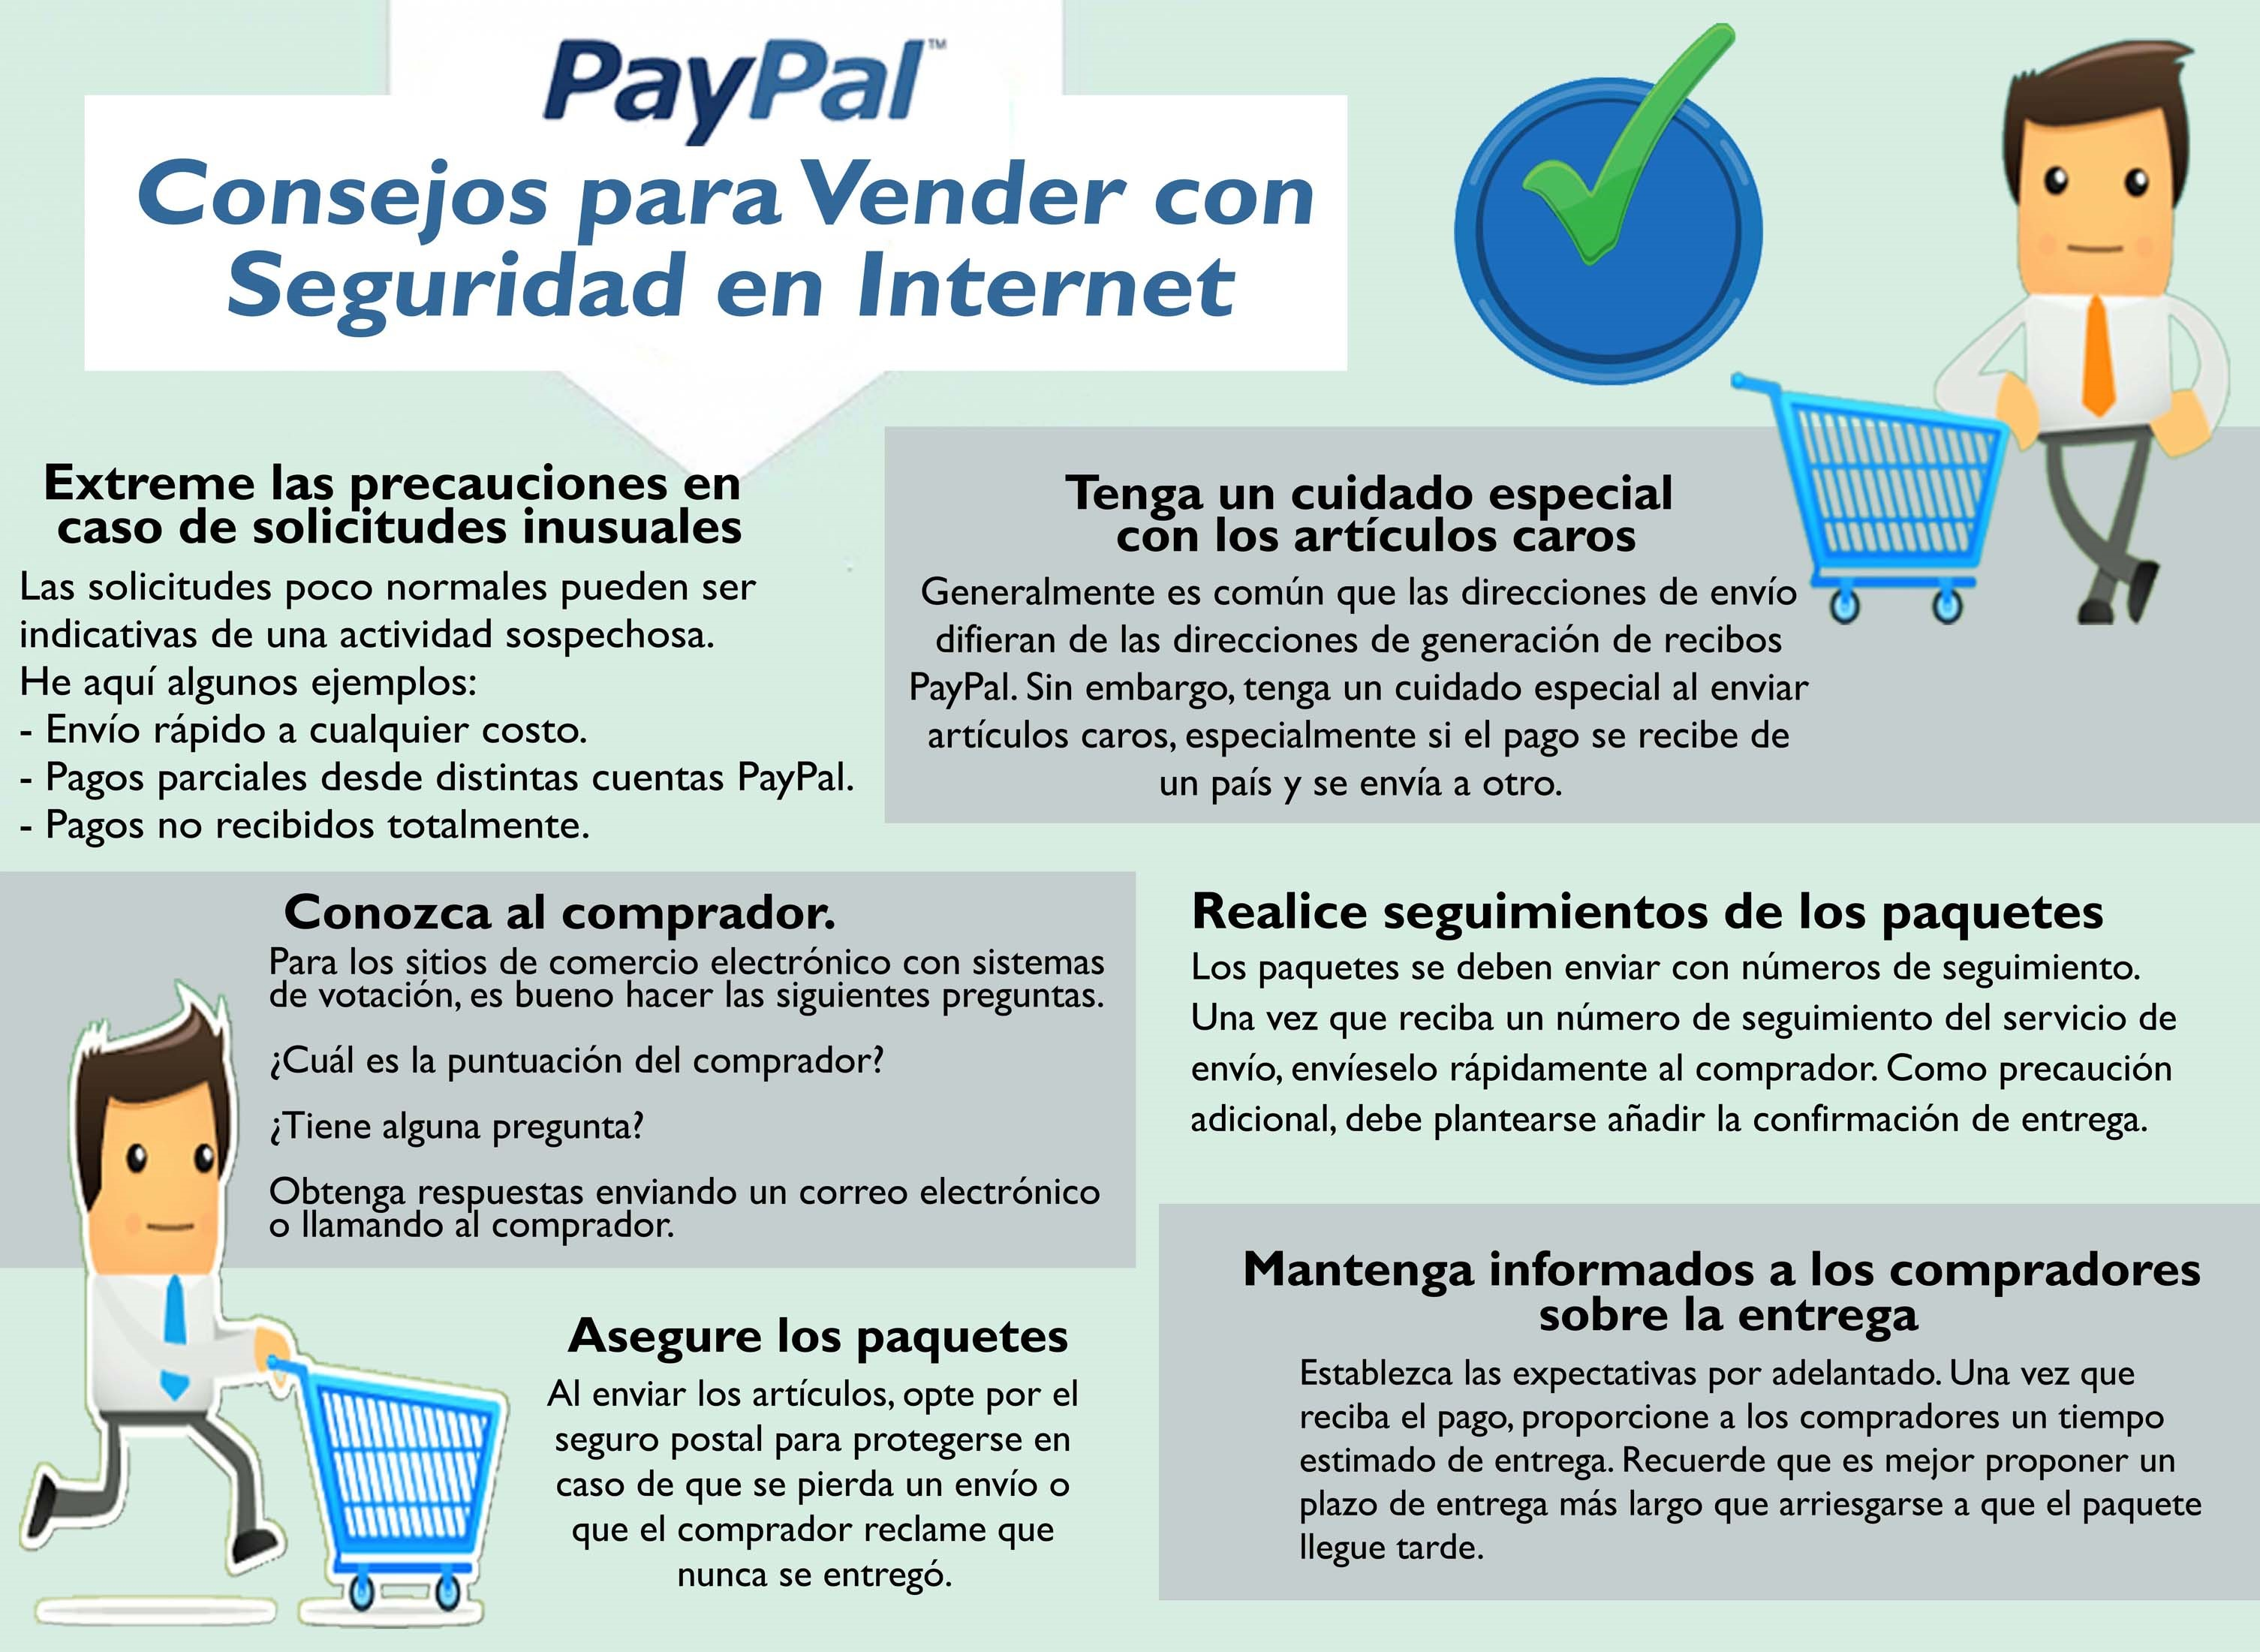 Pay Pal Vender seguridad